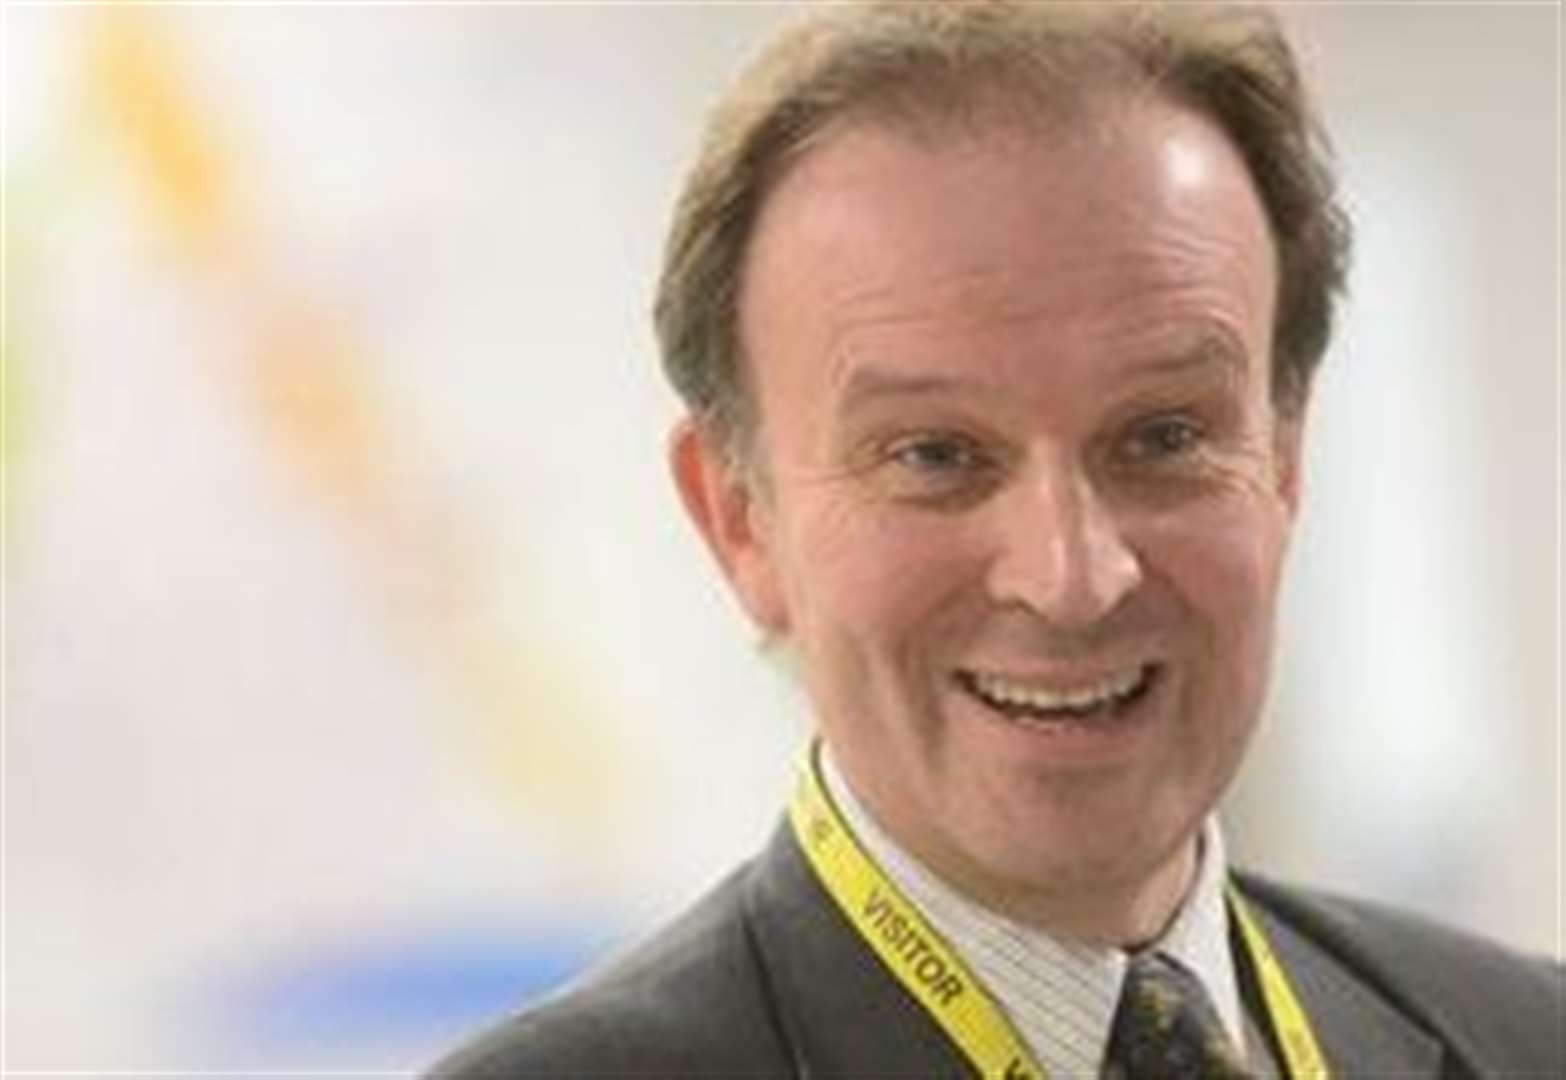 New leader of Kent County Council revealed